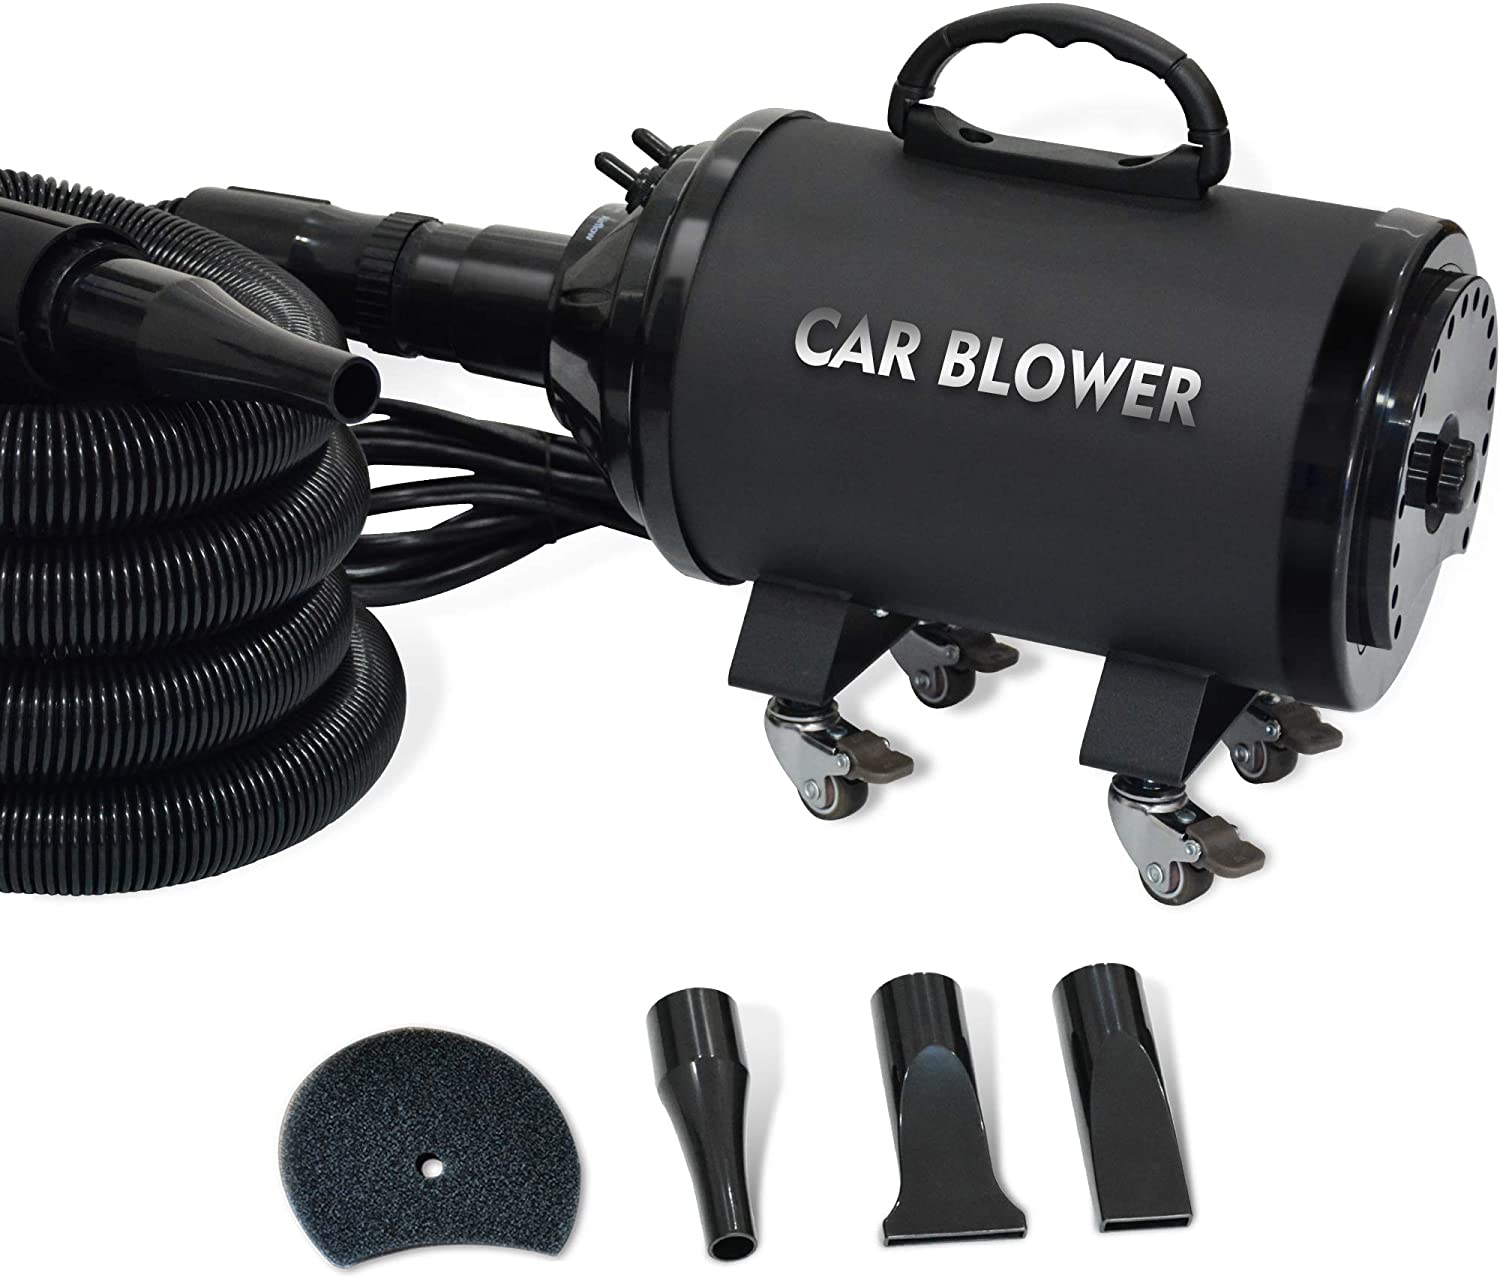 SHELANDY Powerful Motorcycle & Car Dryer with 14 Foot Flexible Hose & Wheels - for Auto Detailing and dusting: Automotive